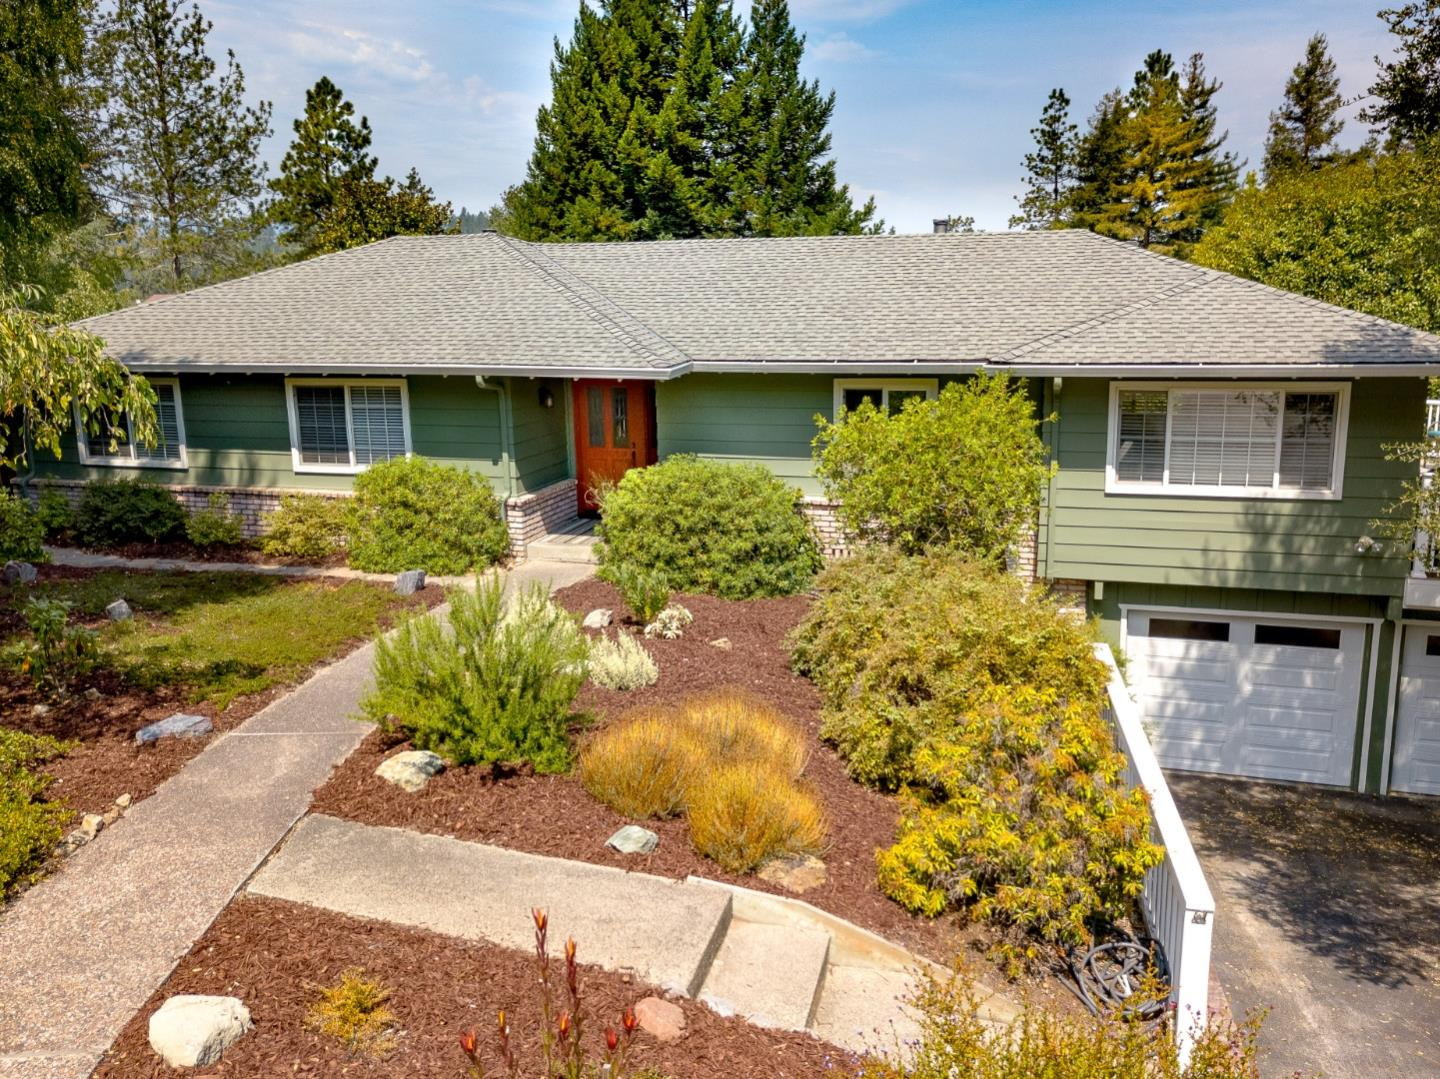 Cul de sac location in the Whispering Pines neighborhood. 3 bed, 3 full baths. Meticulously maintained and updated.  The main level has 3 bed 2 baths, family and living room, separate dining area and breakfast bar in the kitchen. Large deck to take in the view and amazing sunsets and sunrises. The downstairs room has a full bath, used as 4th bedroom/ office could be a possible rental, it has a door to the backyard. Backyard beautifully landscaped and space well utilized.  Extra deep 2 car garage.